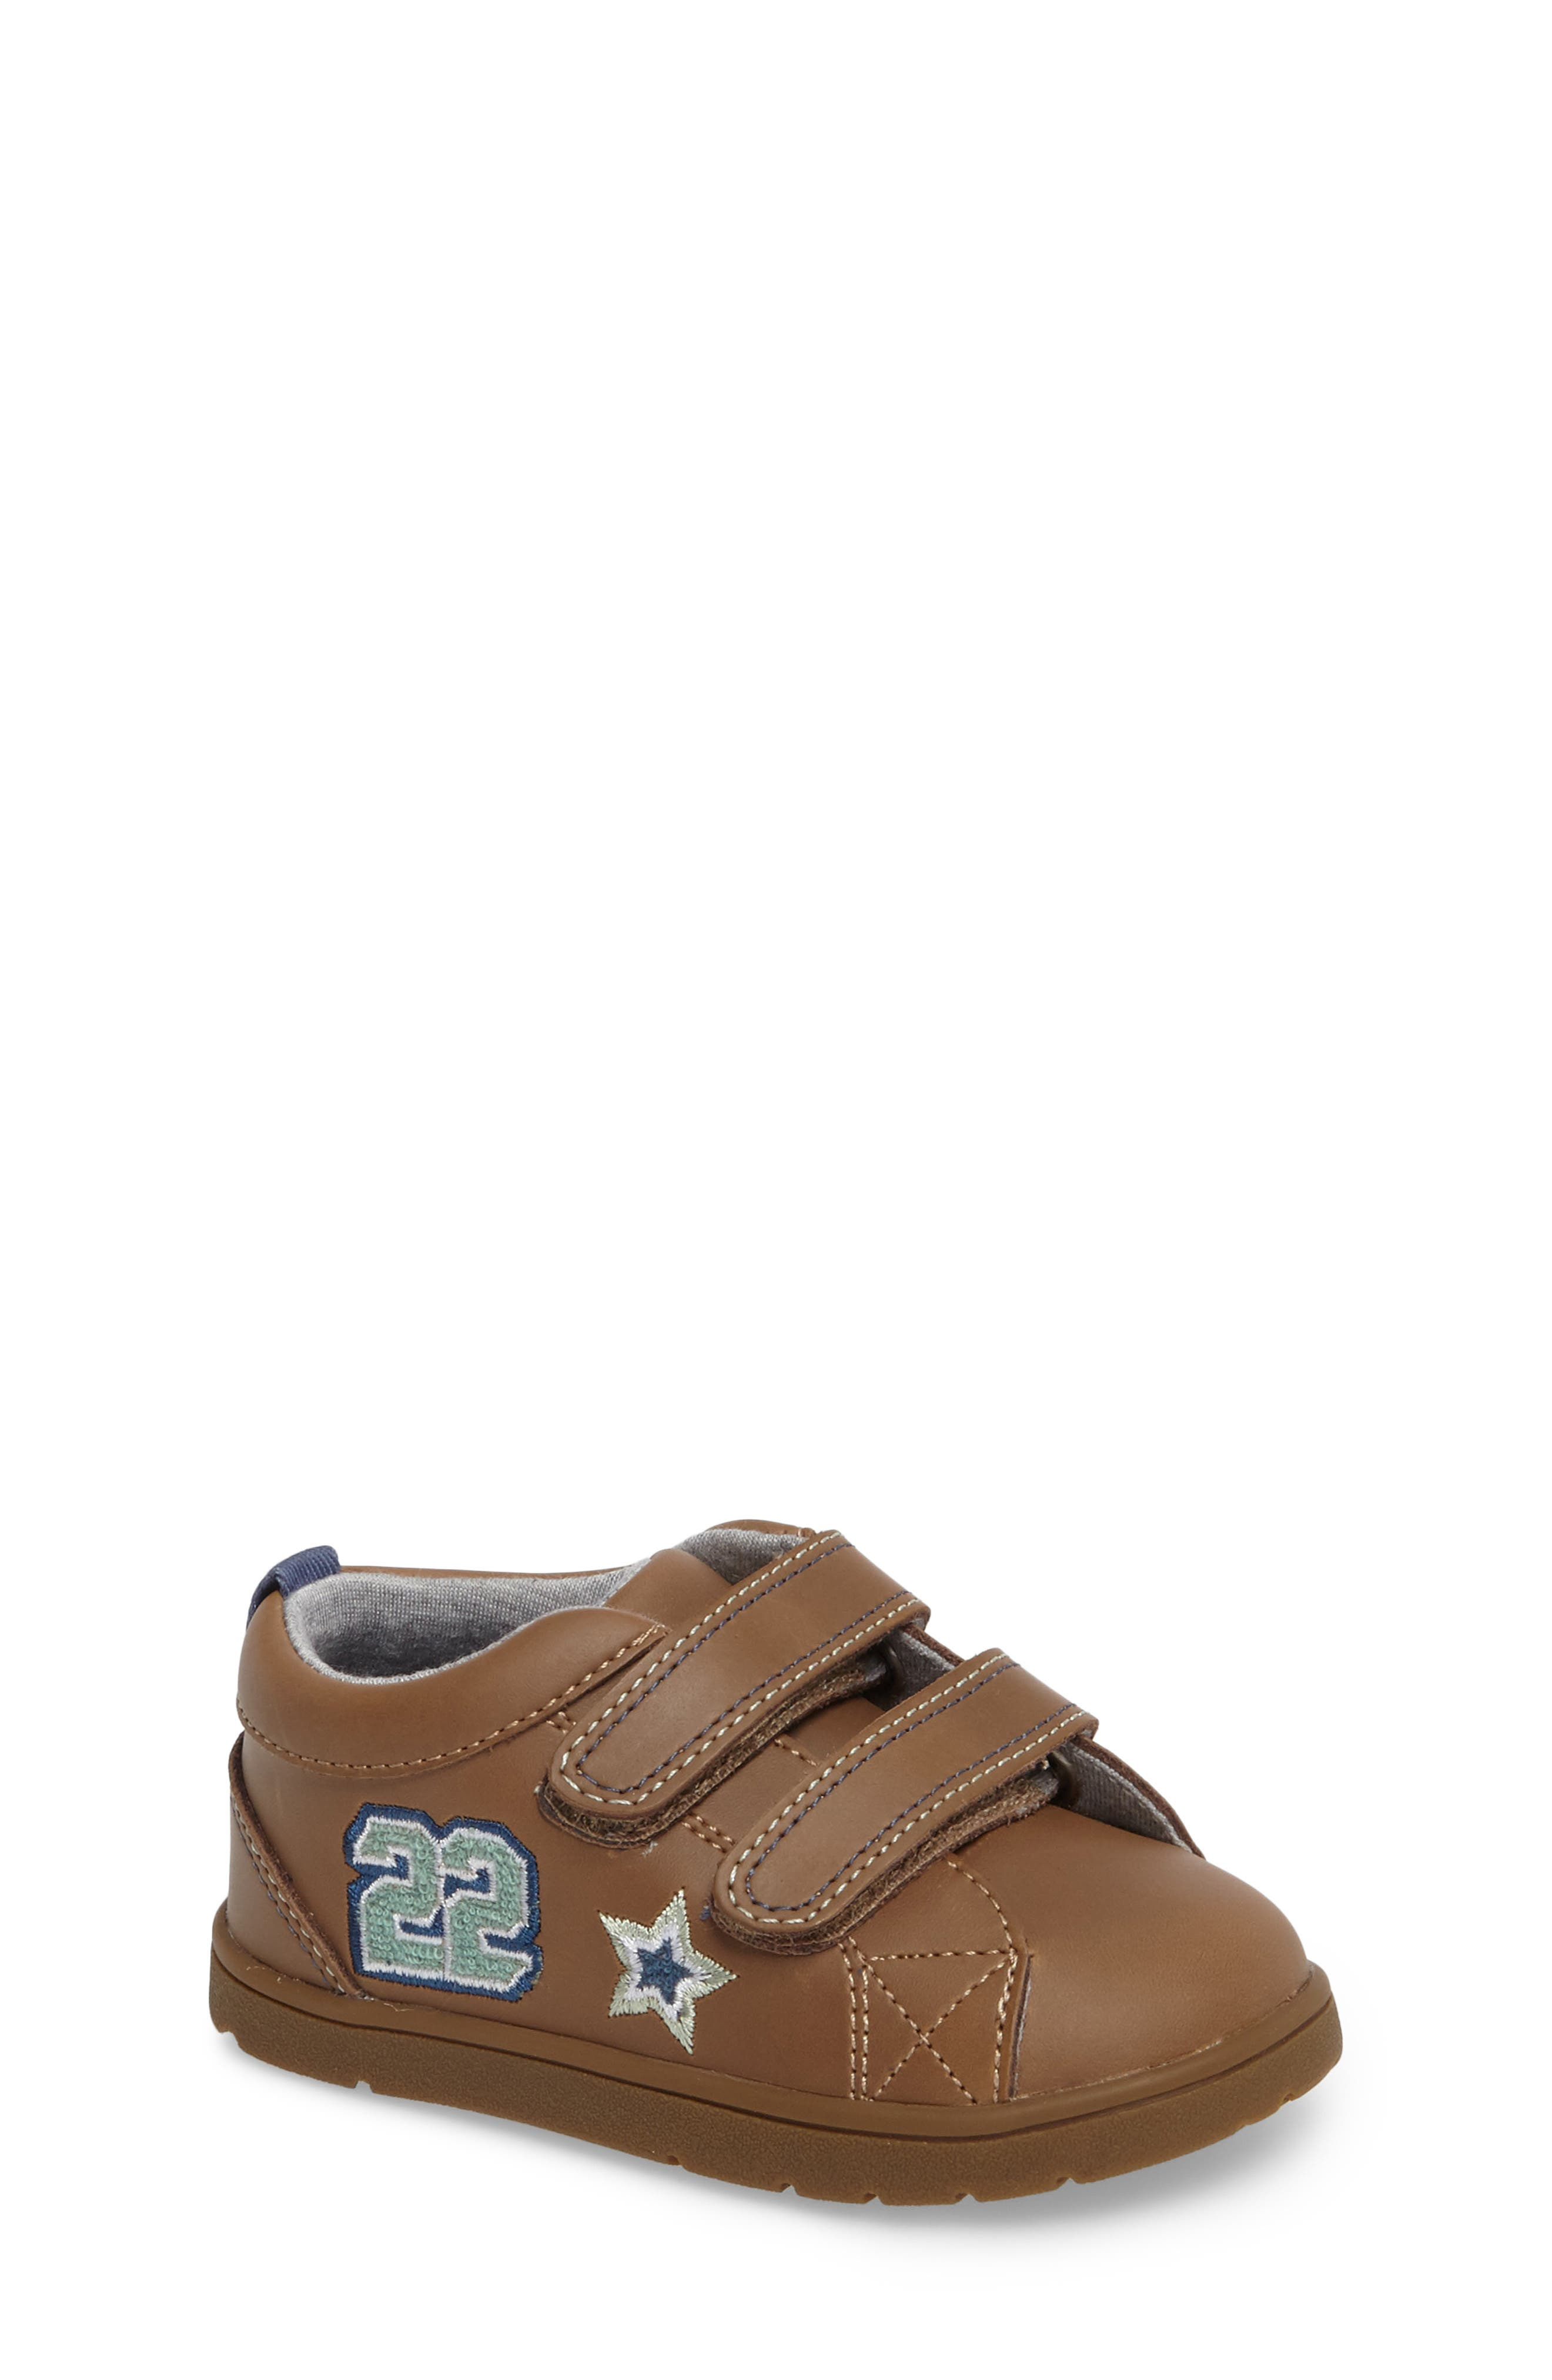 Tucker + Tate Conner Embroidered Sneaker (Baby, Walker & Toddler)